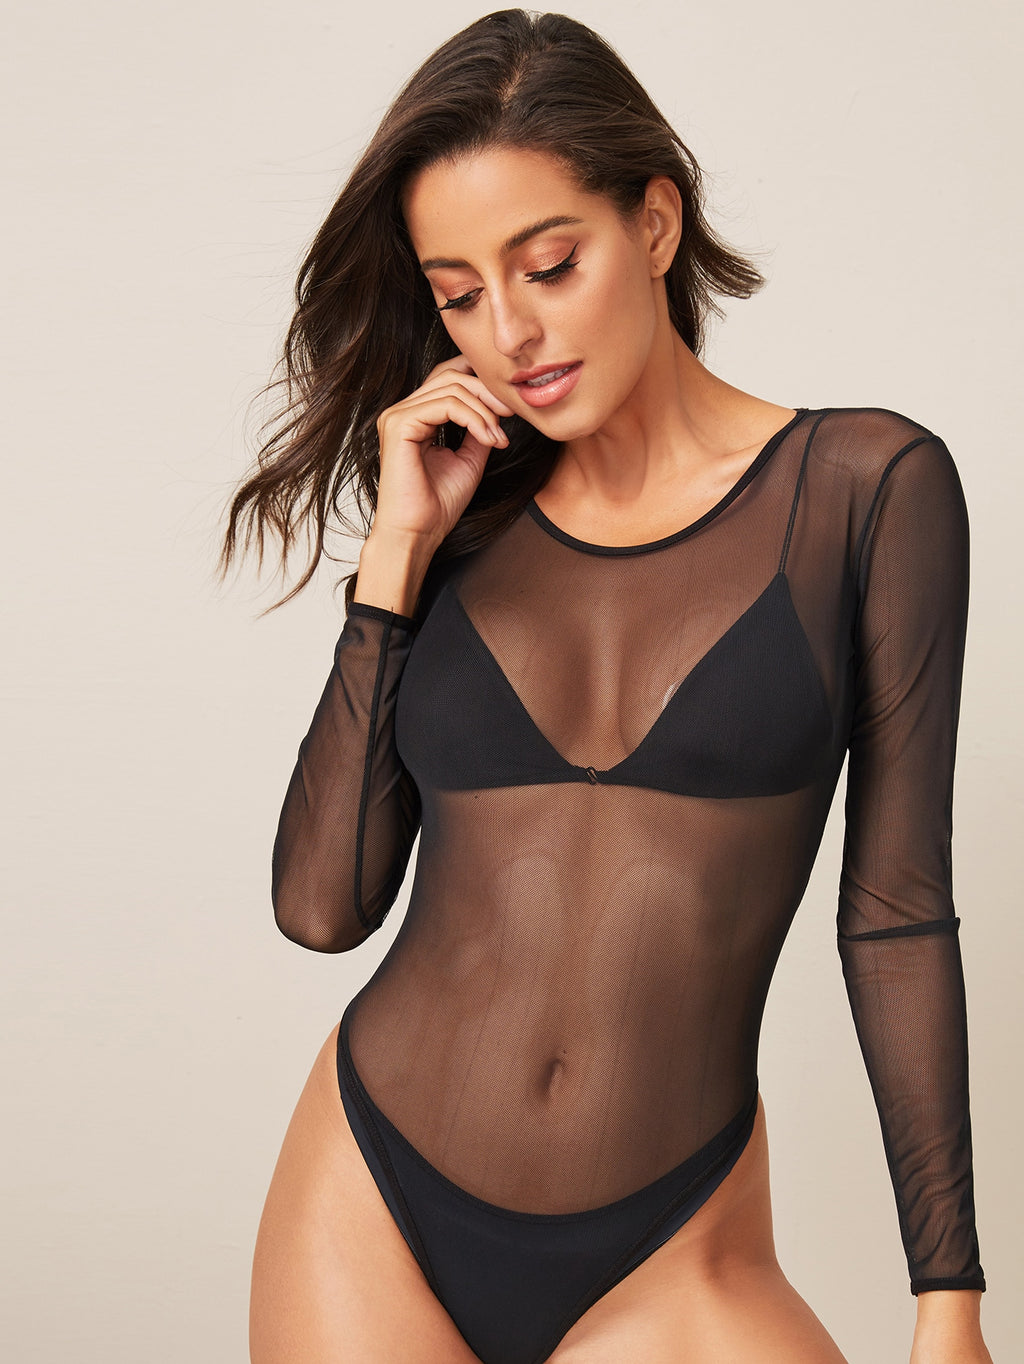 Mesh Sheer Solid Skinny Bodysuit Without Bra (4377966542913)